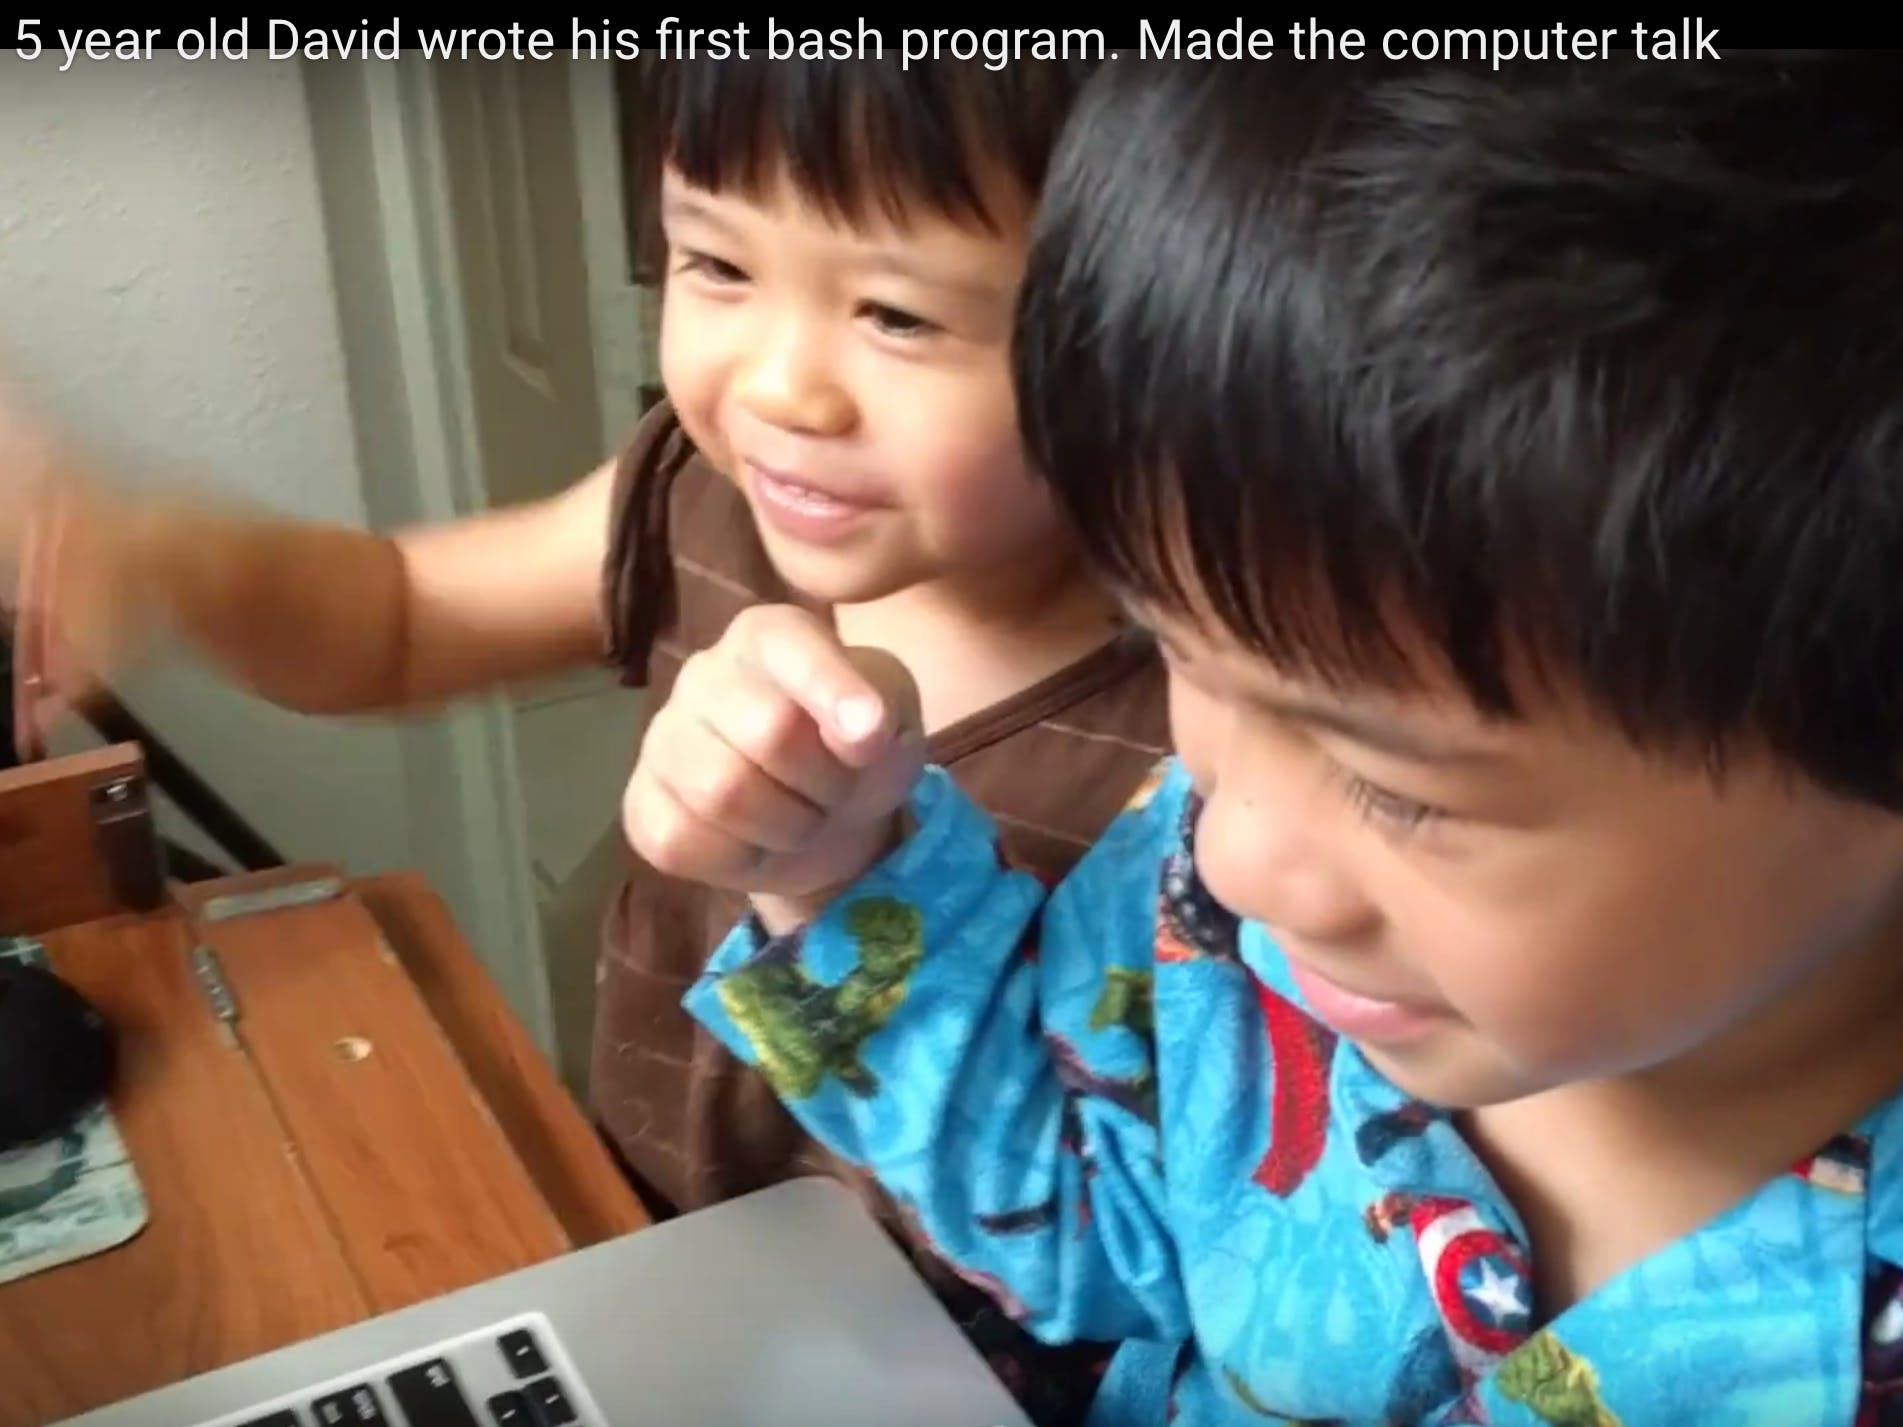 My 5-year Old Son Wrote His First Program